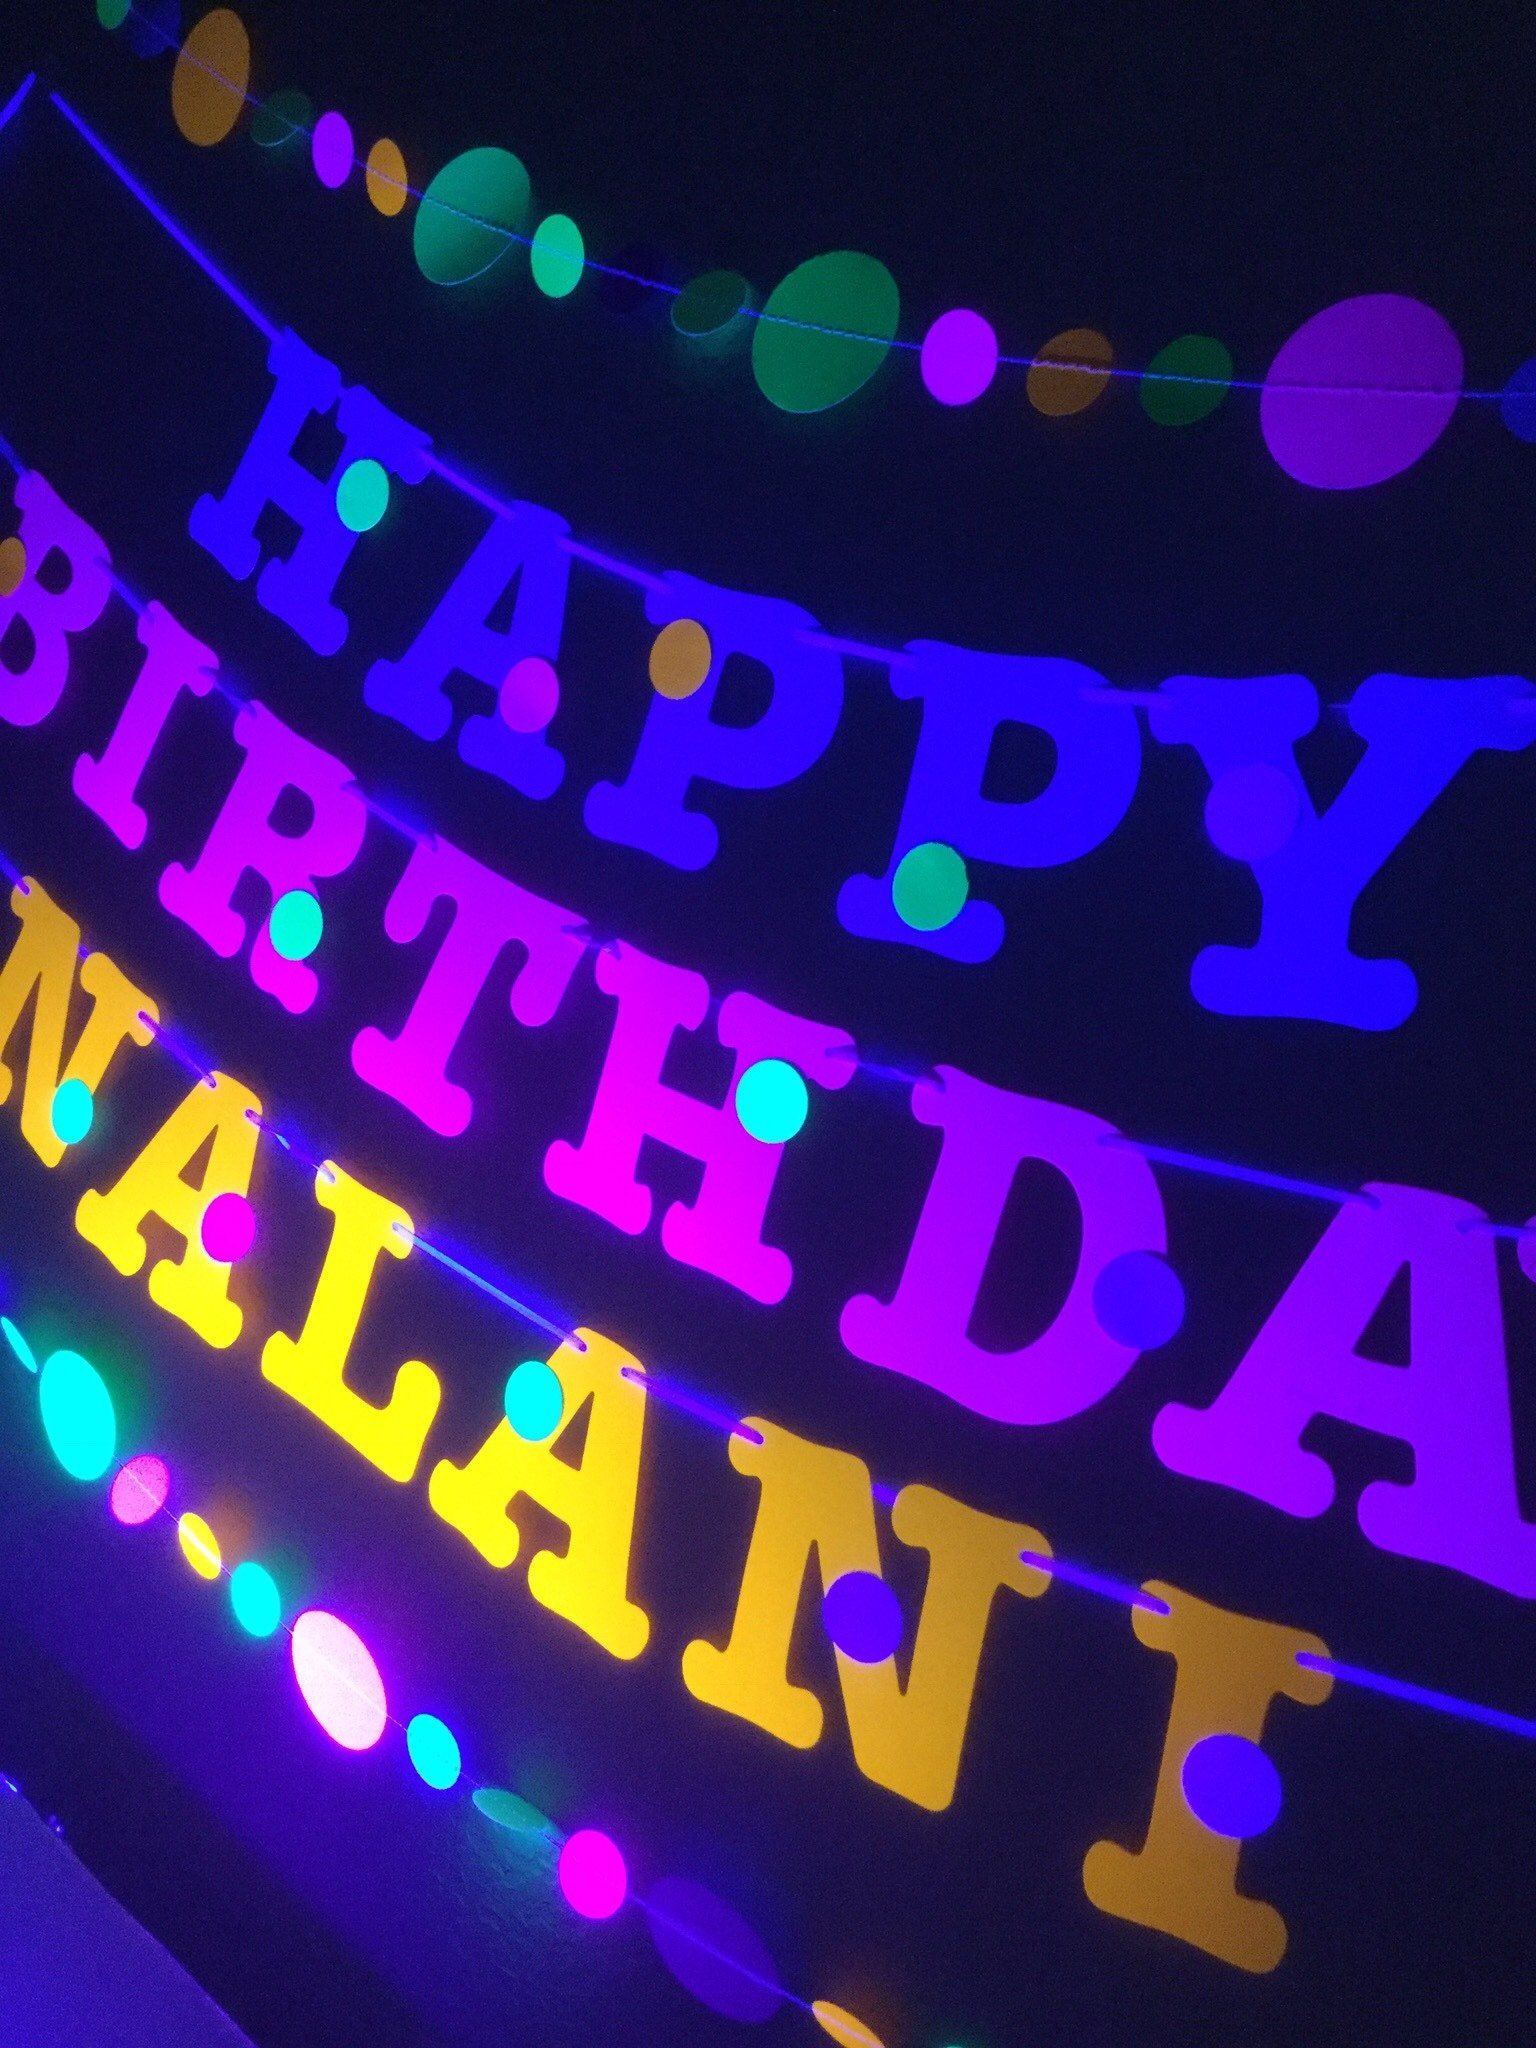 HAPPY BIRTHDAY in 3.5 Sizzix All Star letters in neon for a glow party